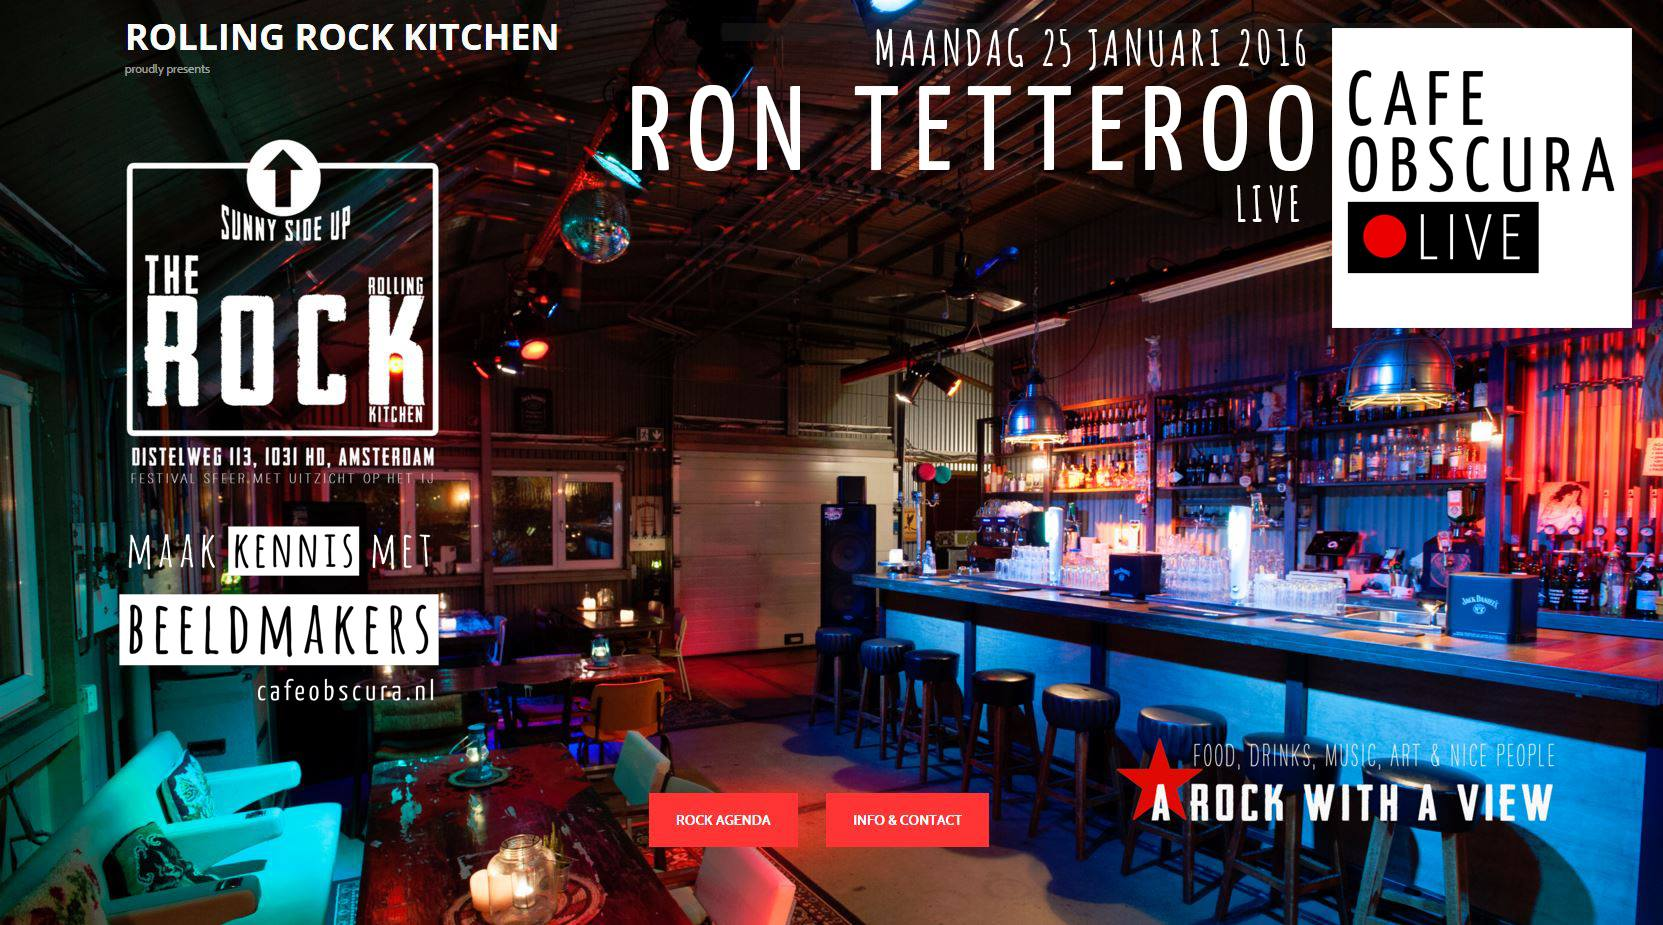 Ron Tetteroo tijdens cafeobscura LIVE in Amsterdam | Cafe ... Rolling Rock Kitchen